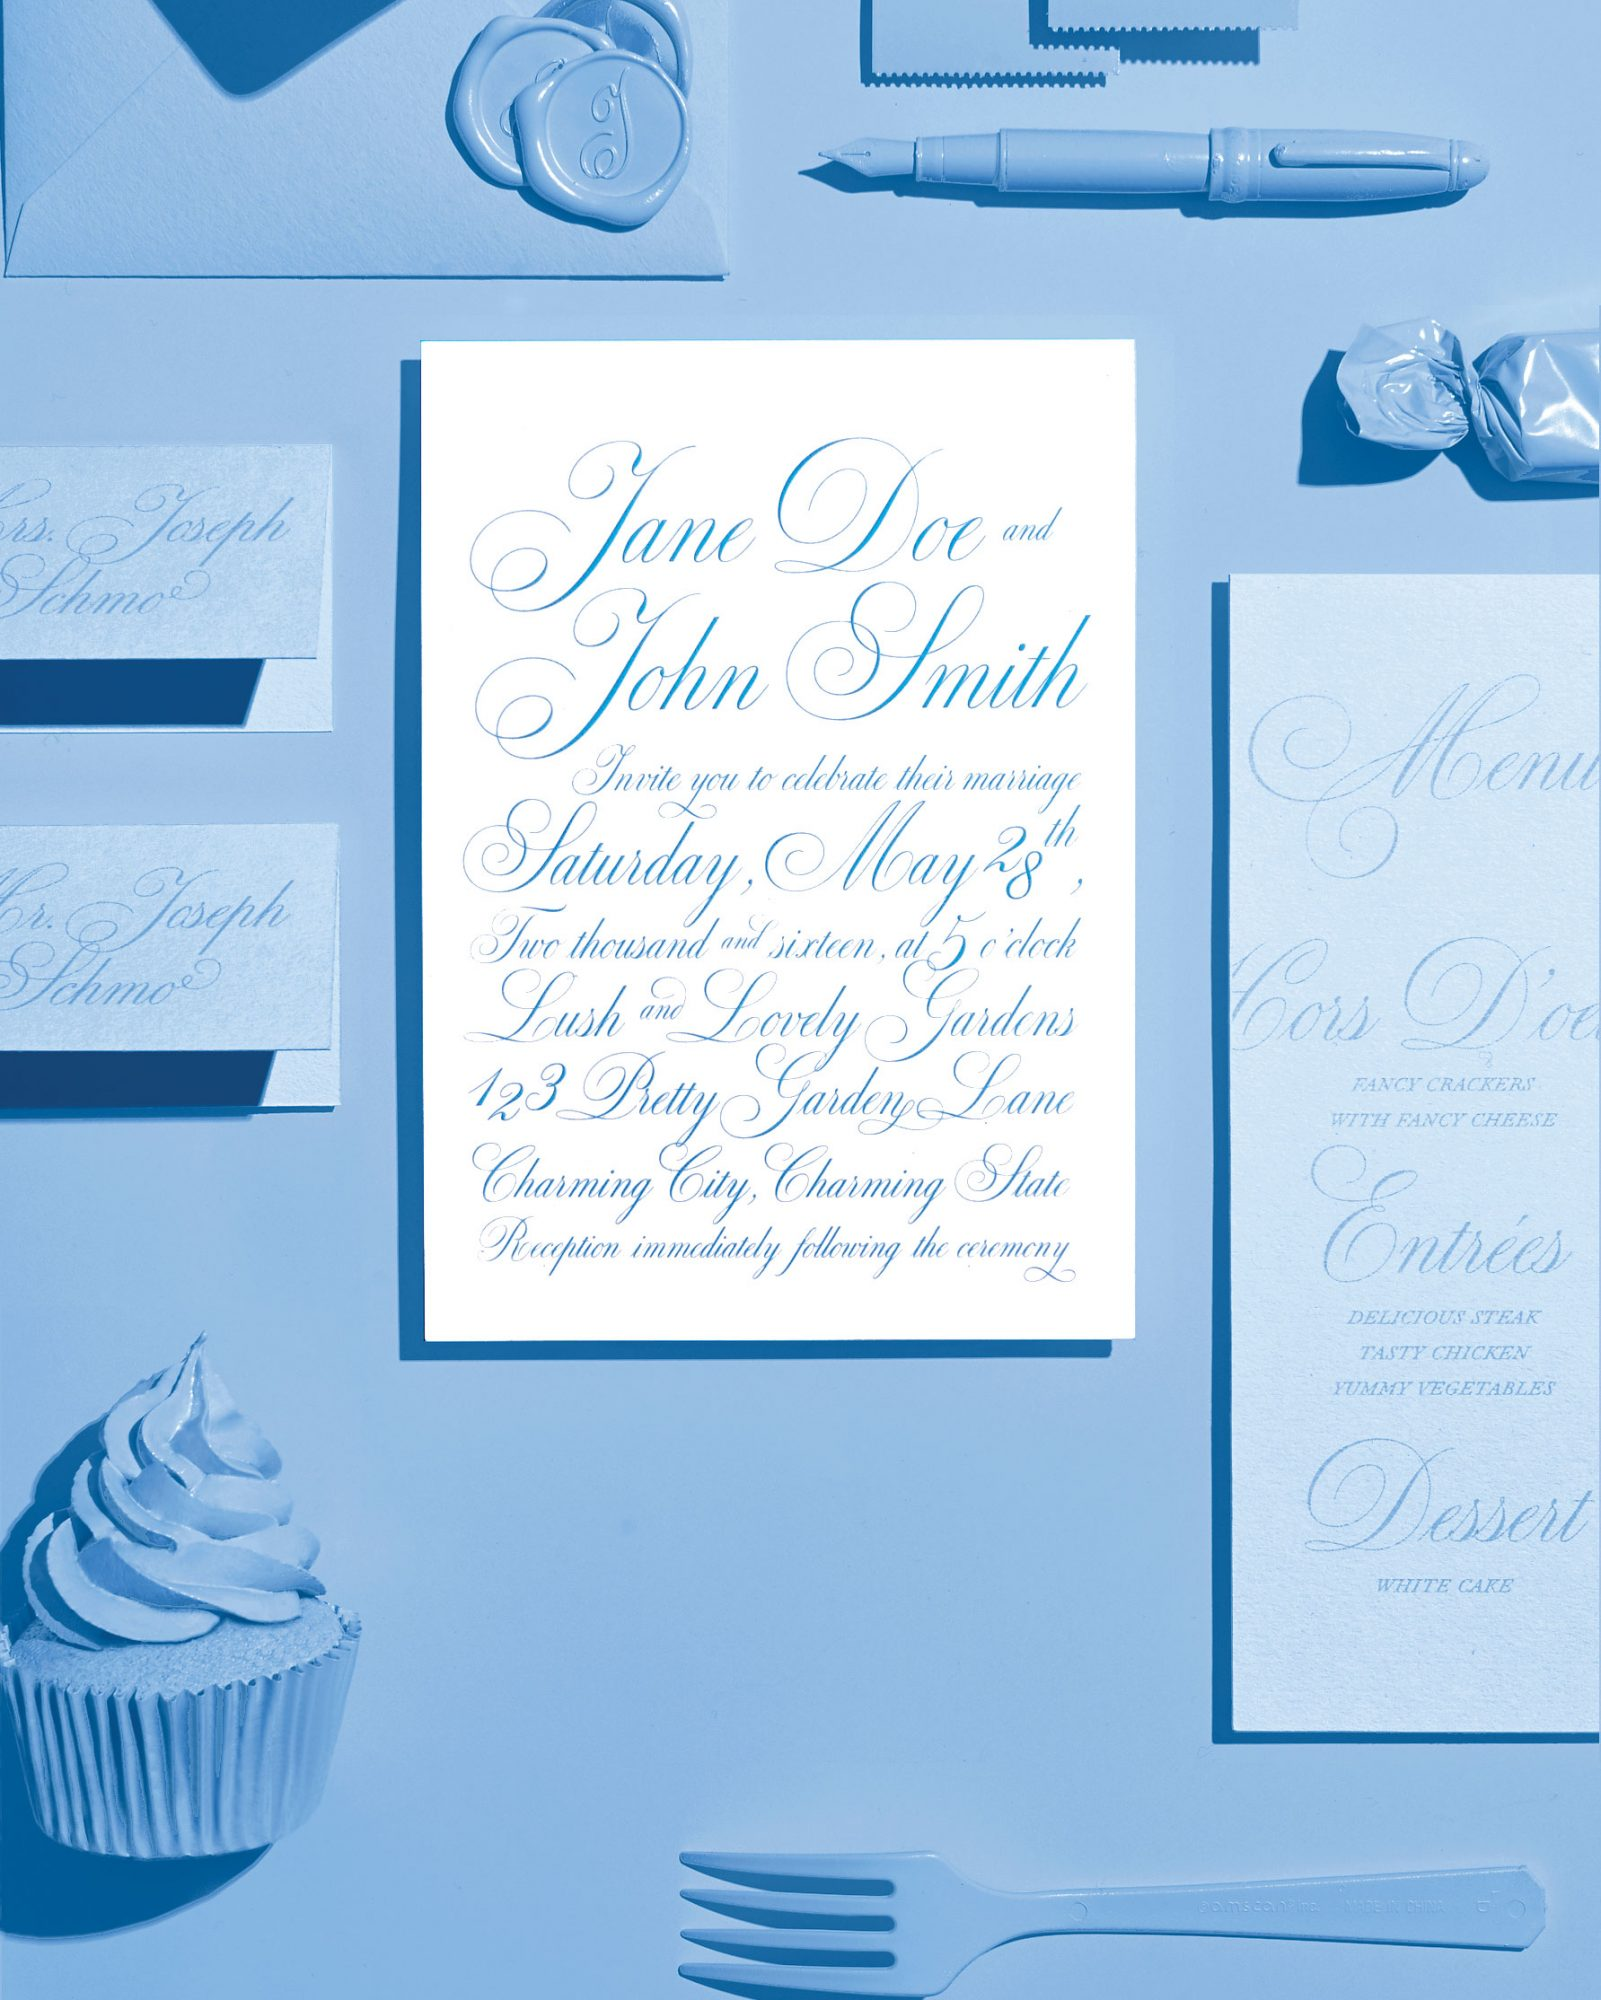 mstationery-light-blue-145-d112669-comp.jpg